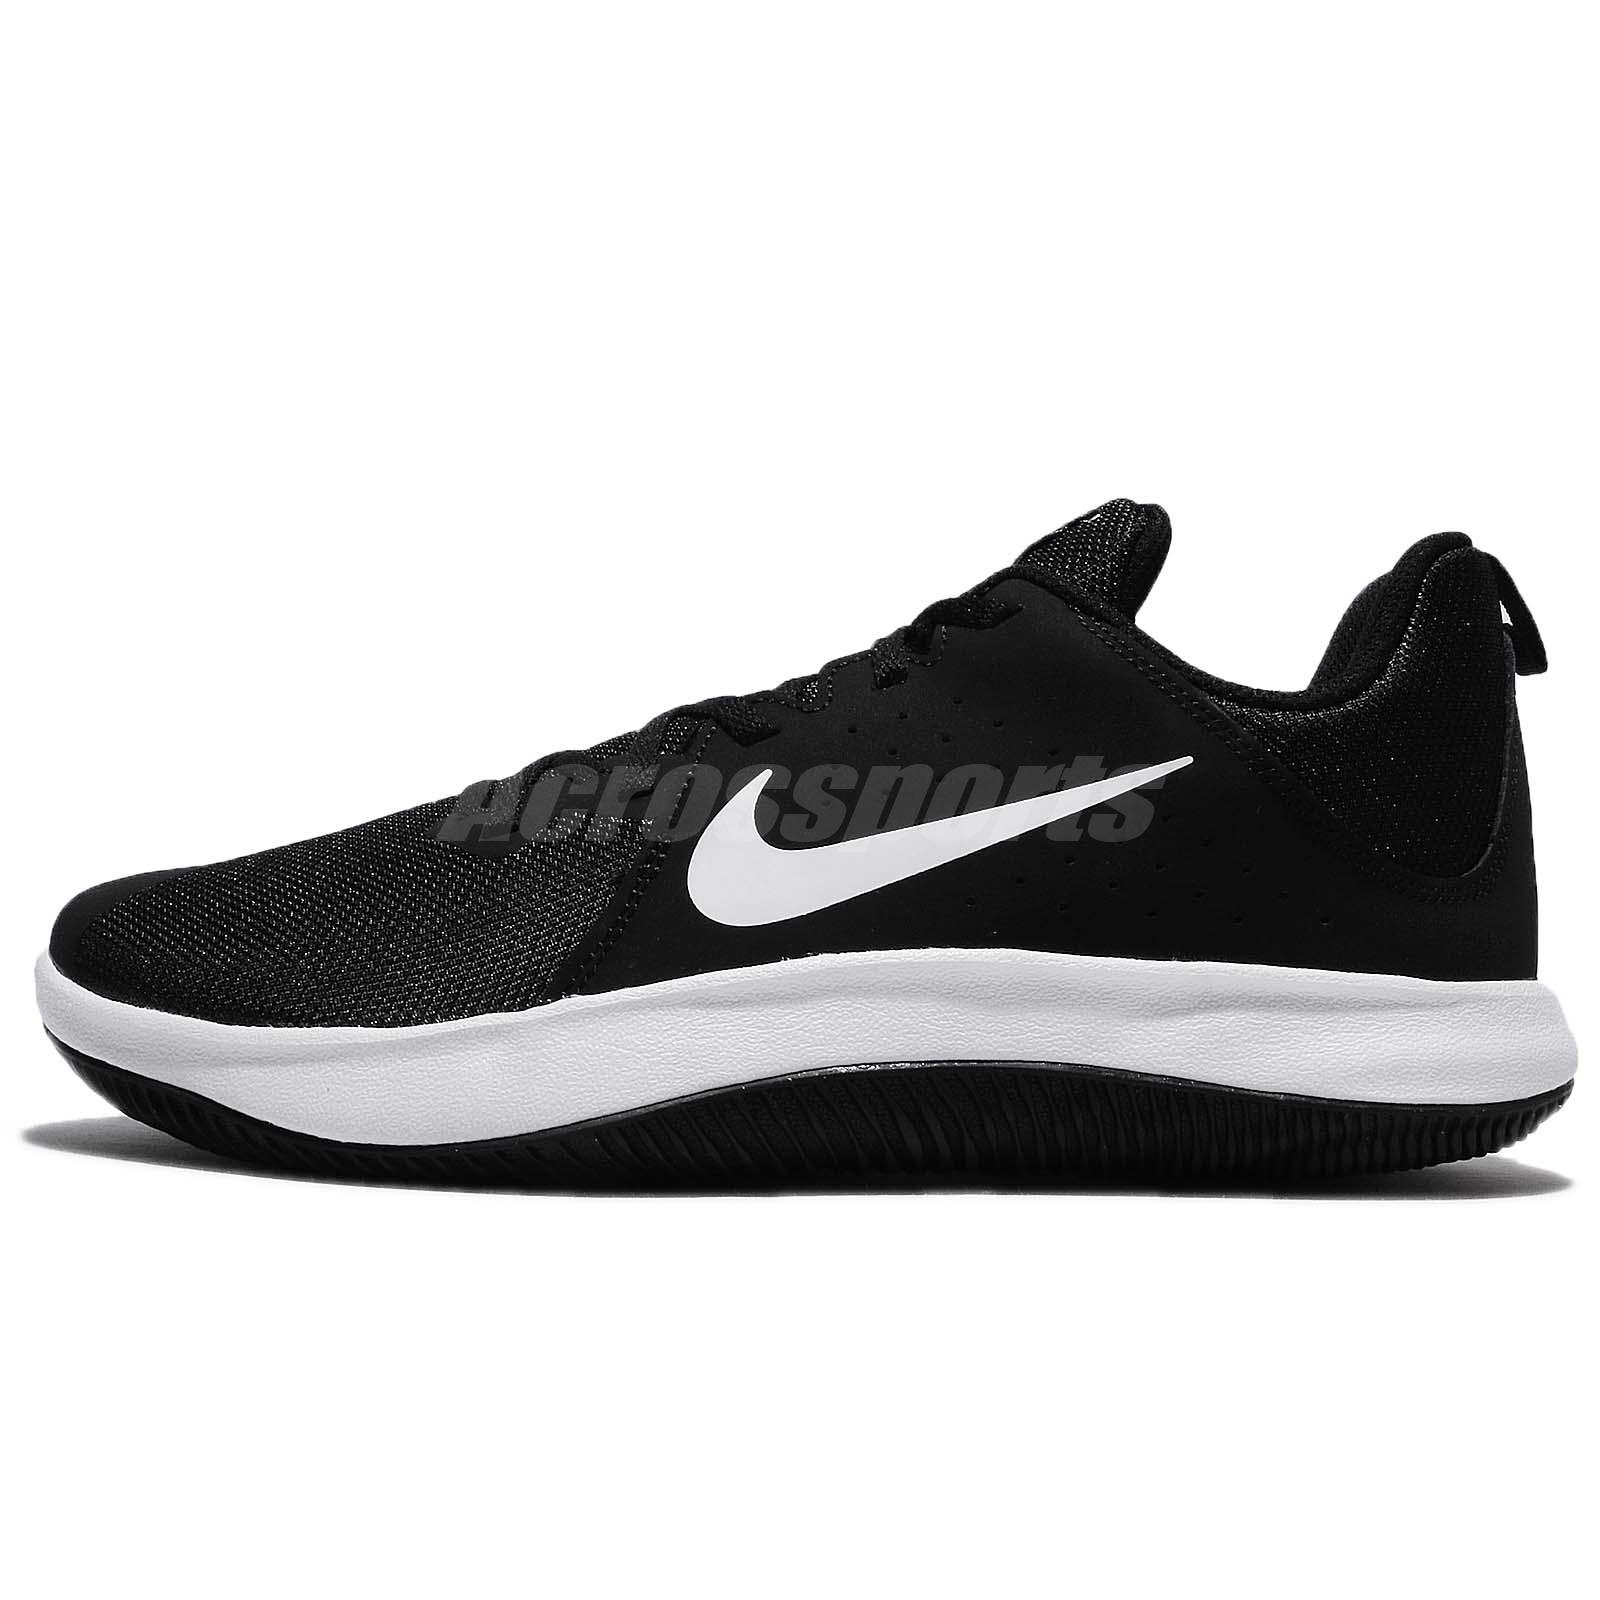 6a013fcdd2df Nike Fly.By Low Black White Men Basketball Shoes Sneakers Trainers 908973- 001